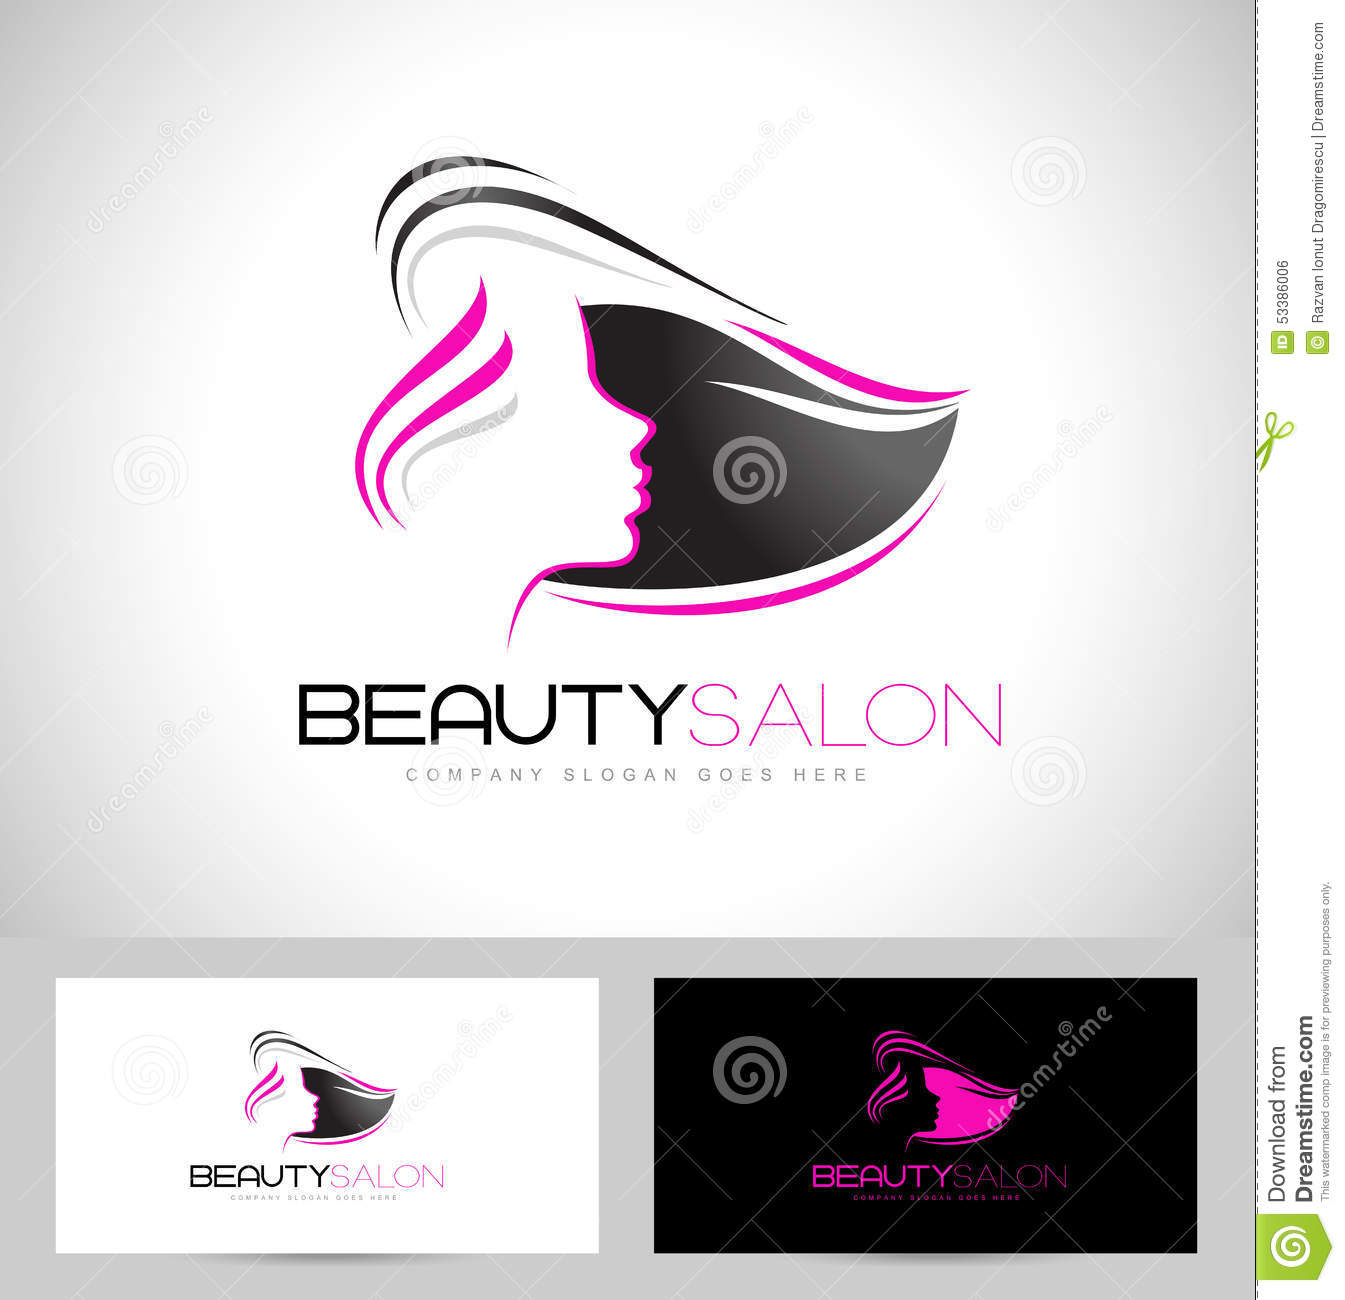 Salon stock illustrations 54855 salon stock illustrations hair salon logo design creative abstract woman face and hair and business card template wajeb Choice Image